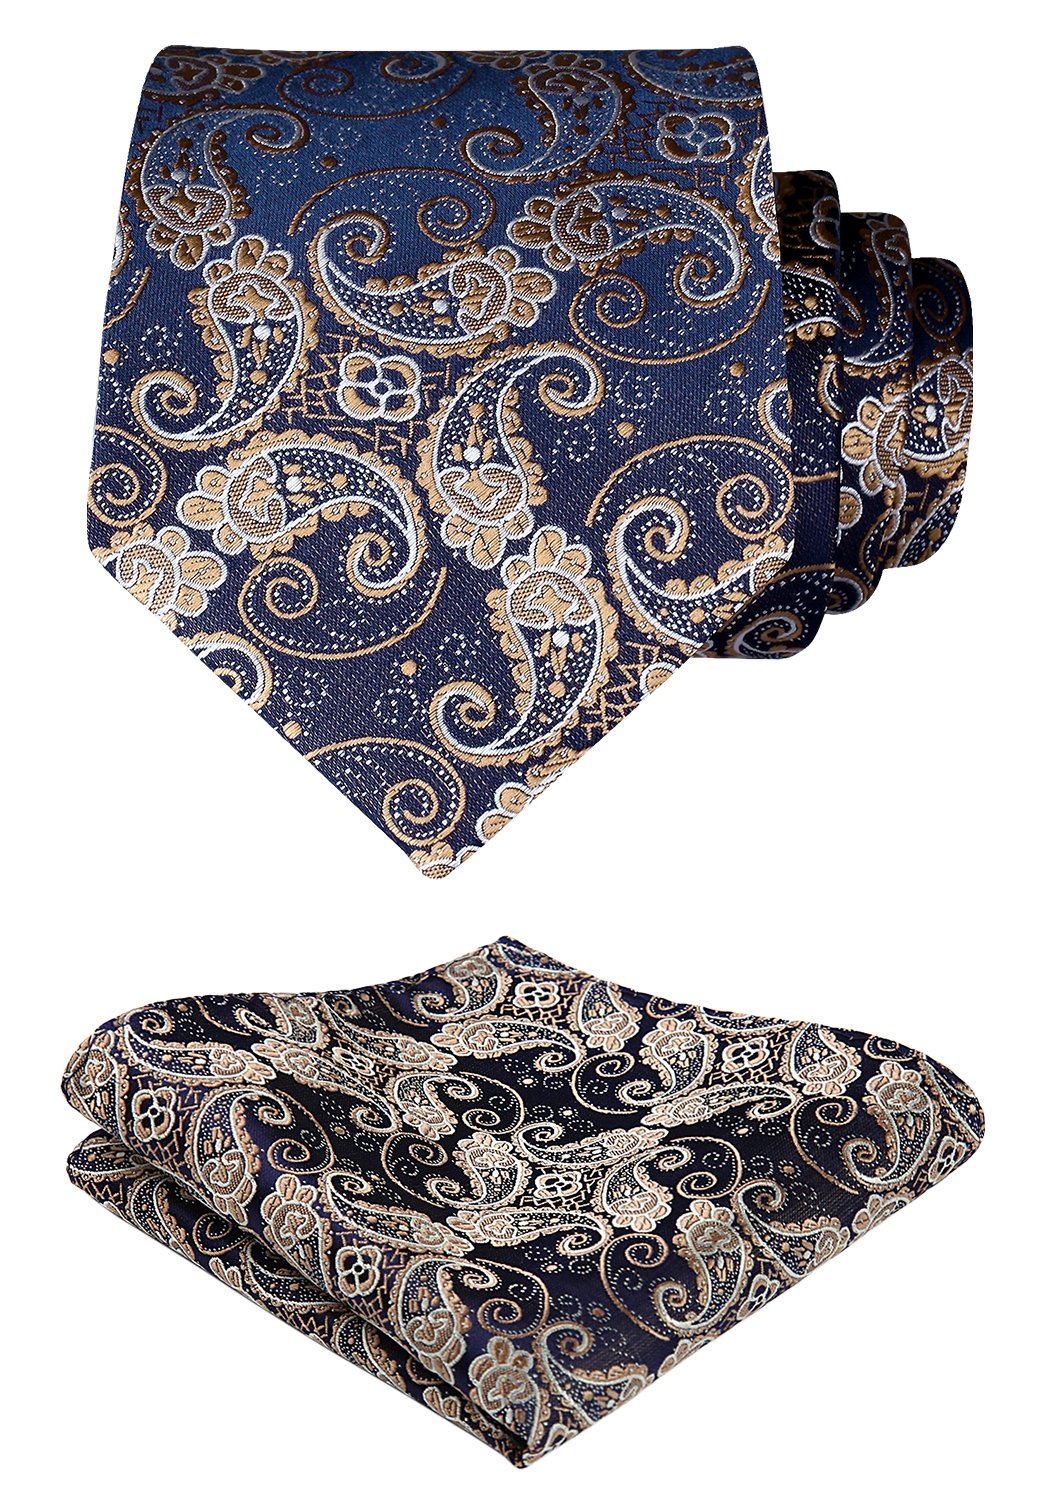 HISDERN Paisley Tie Handkerchief Woven Classic Men's Necktie & Pocket Square Set,Gold & Navy Blue,One Size